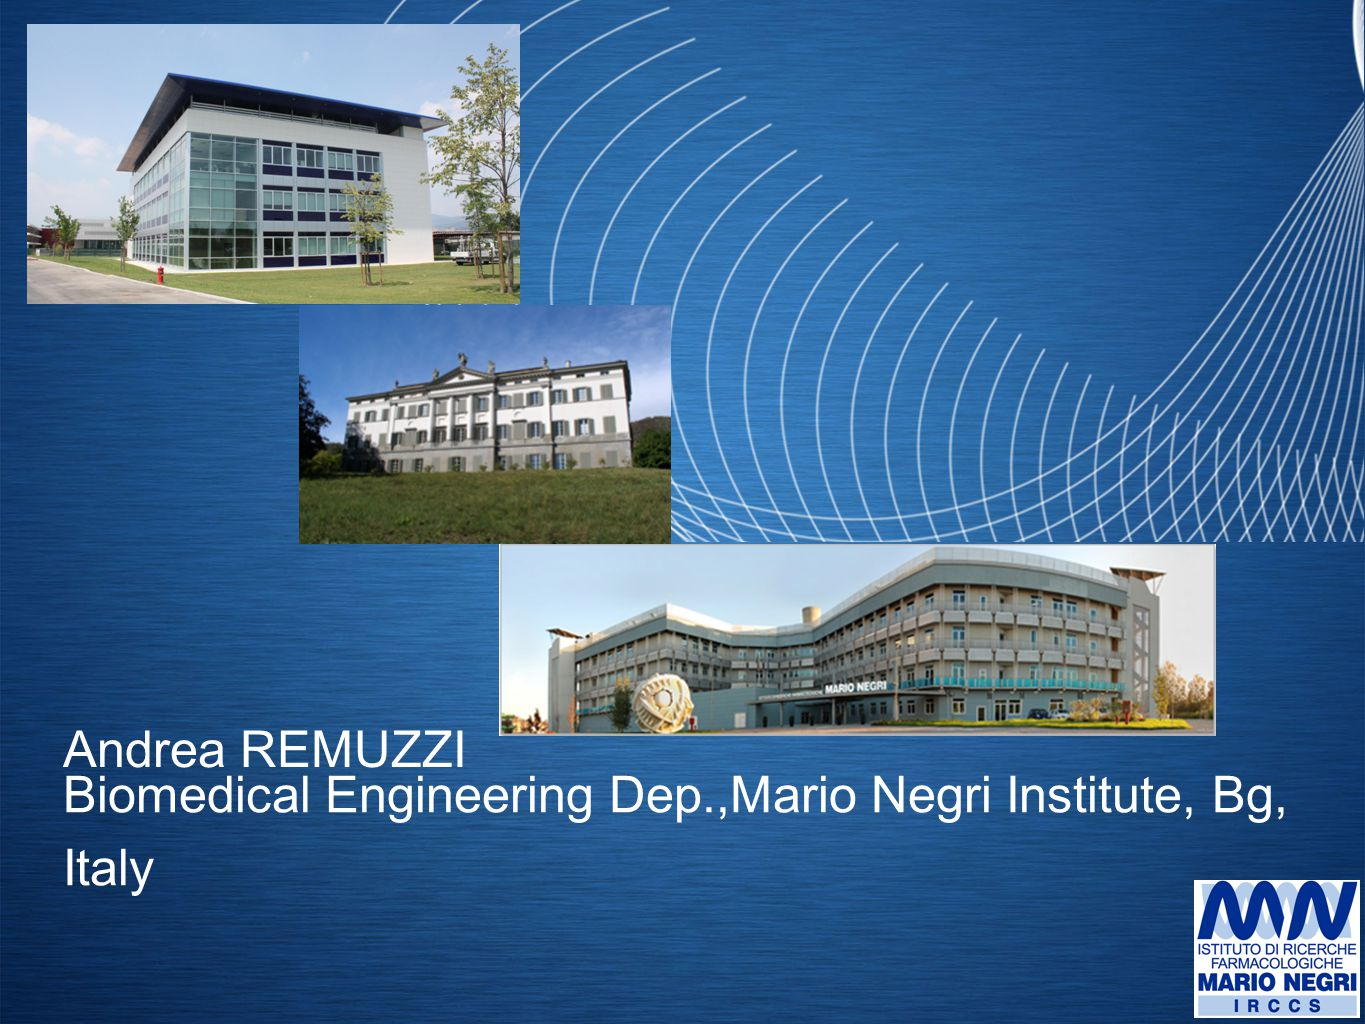 Biomedical Engineering Dep.,Mario Negri Institute, Bg, Italy